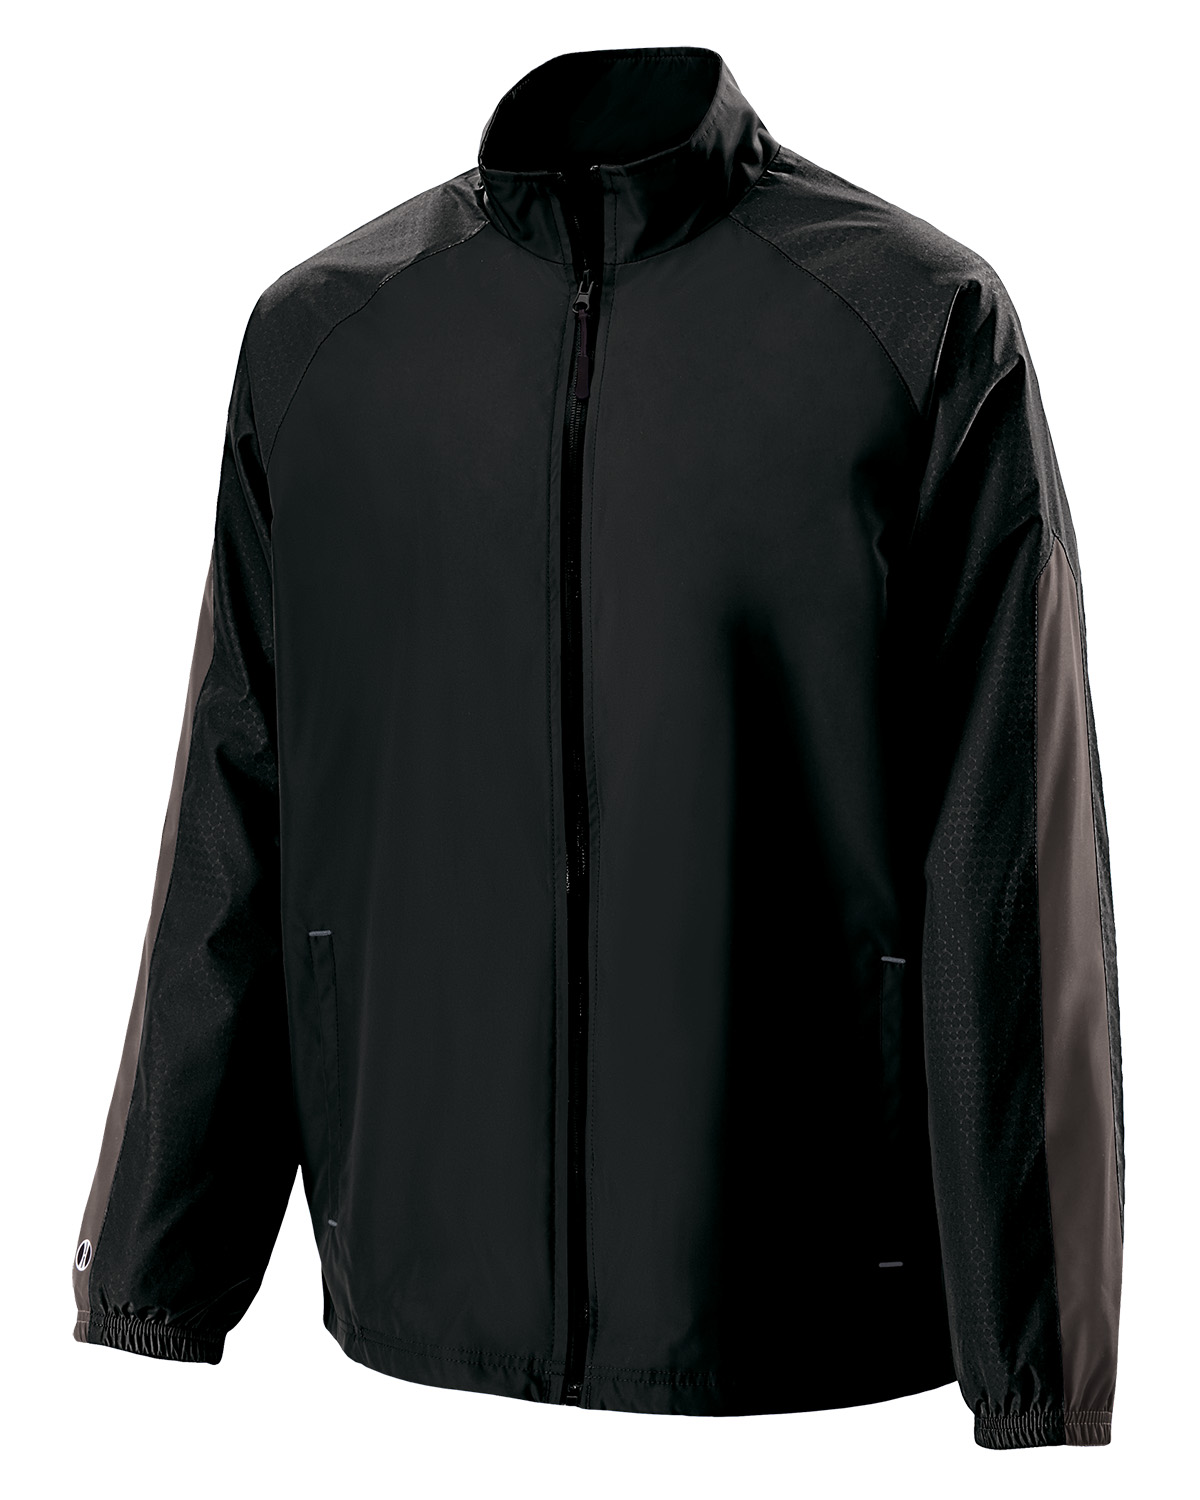 Holloway 222212 - Youth Polyester Bionic Jacket